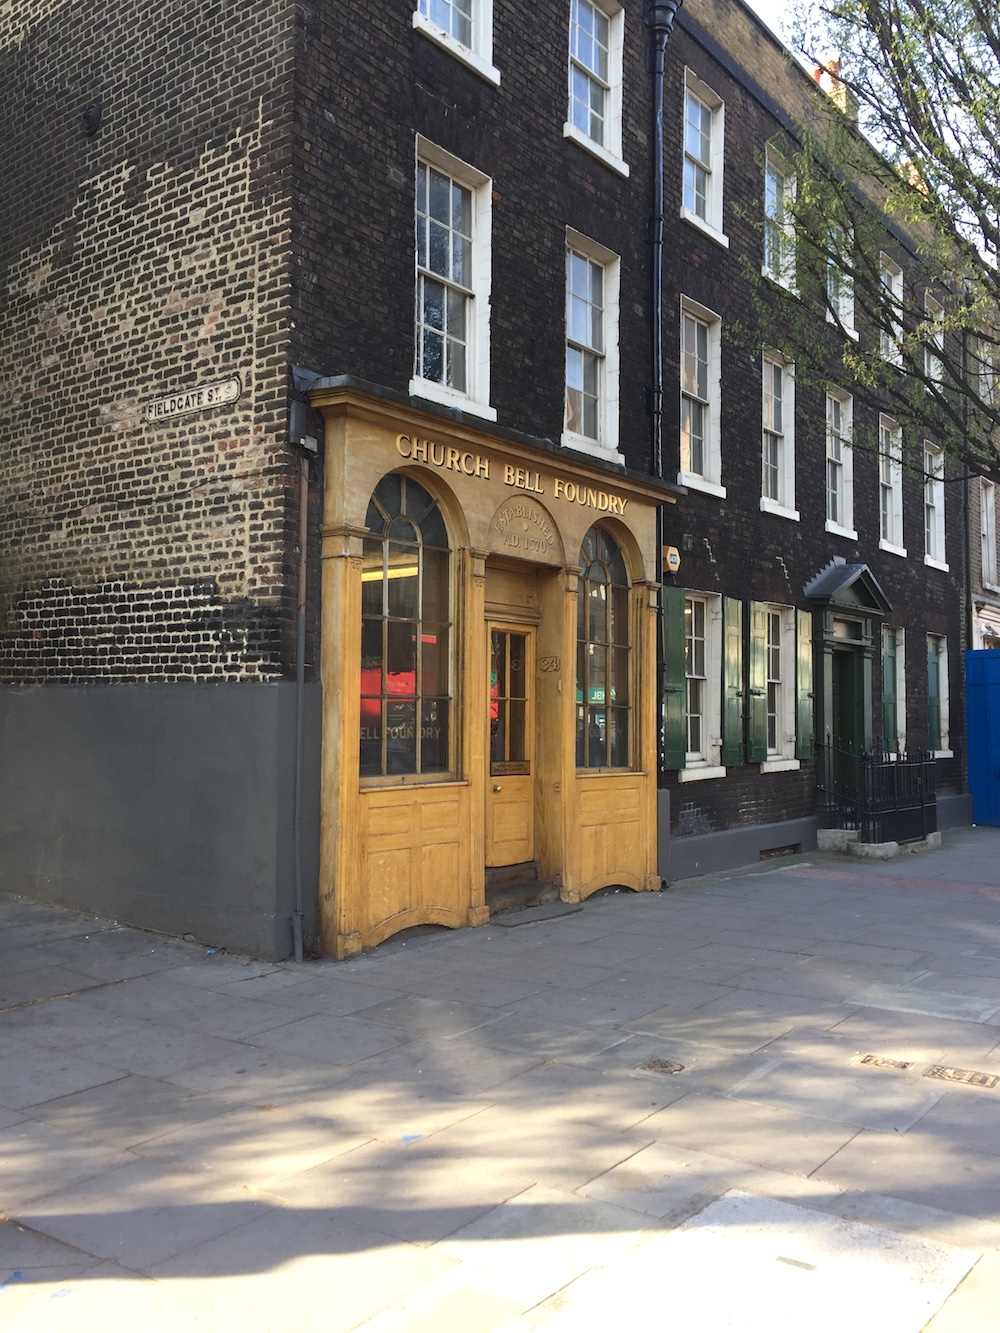 Whitechapel Bell Foundry. Image courtesy 31/44